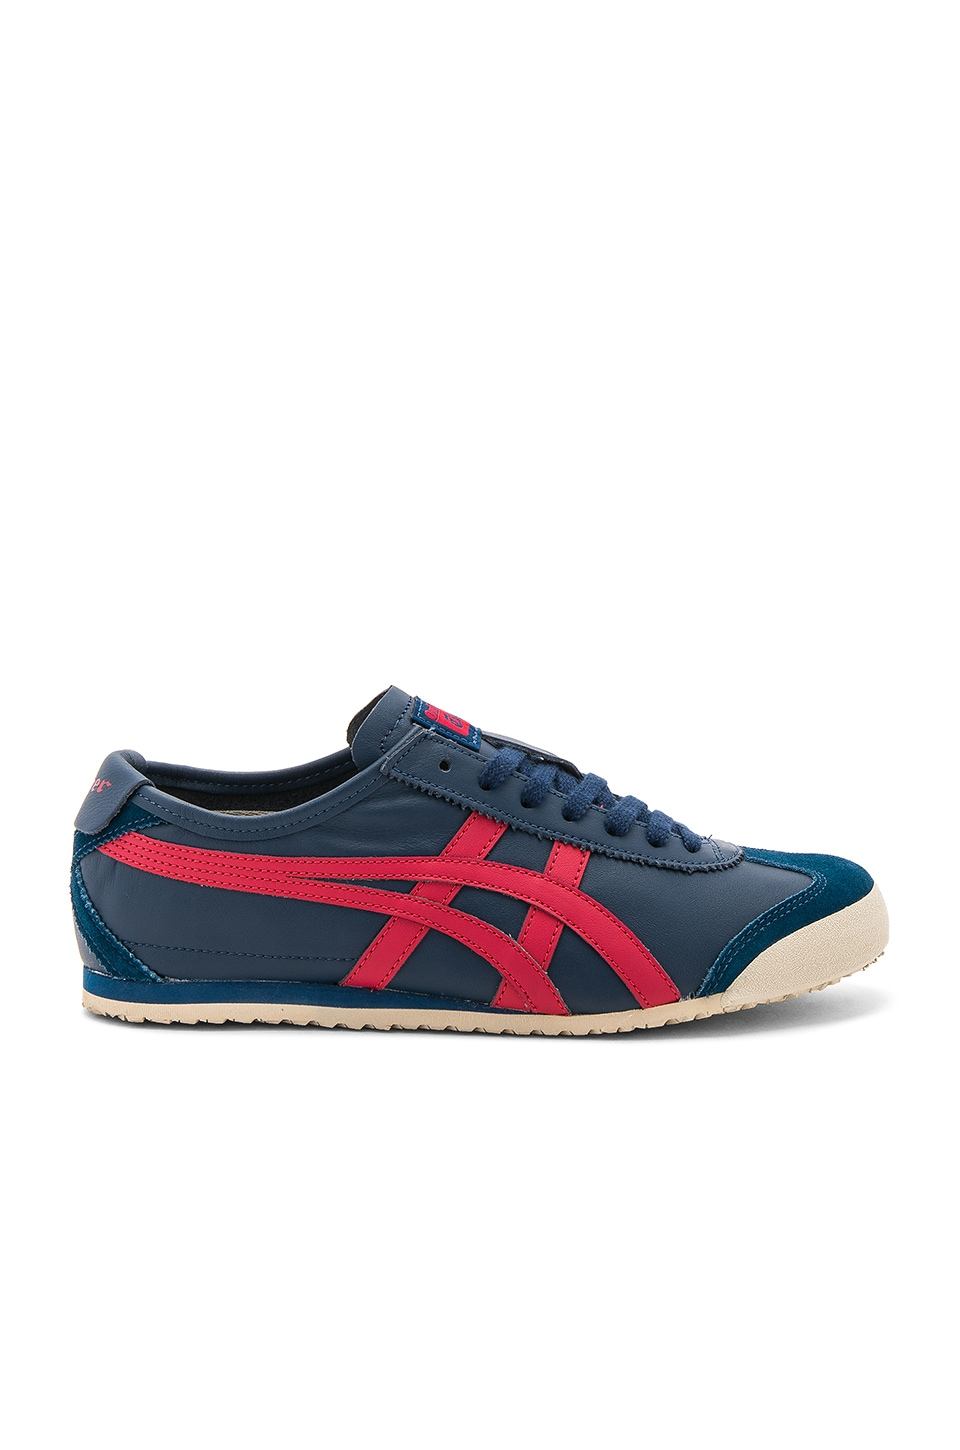 Onitsuka Tiger Mexico 66 in Poseidon & Classic Red